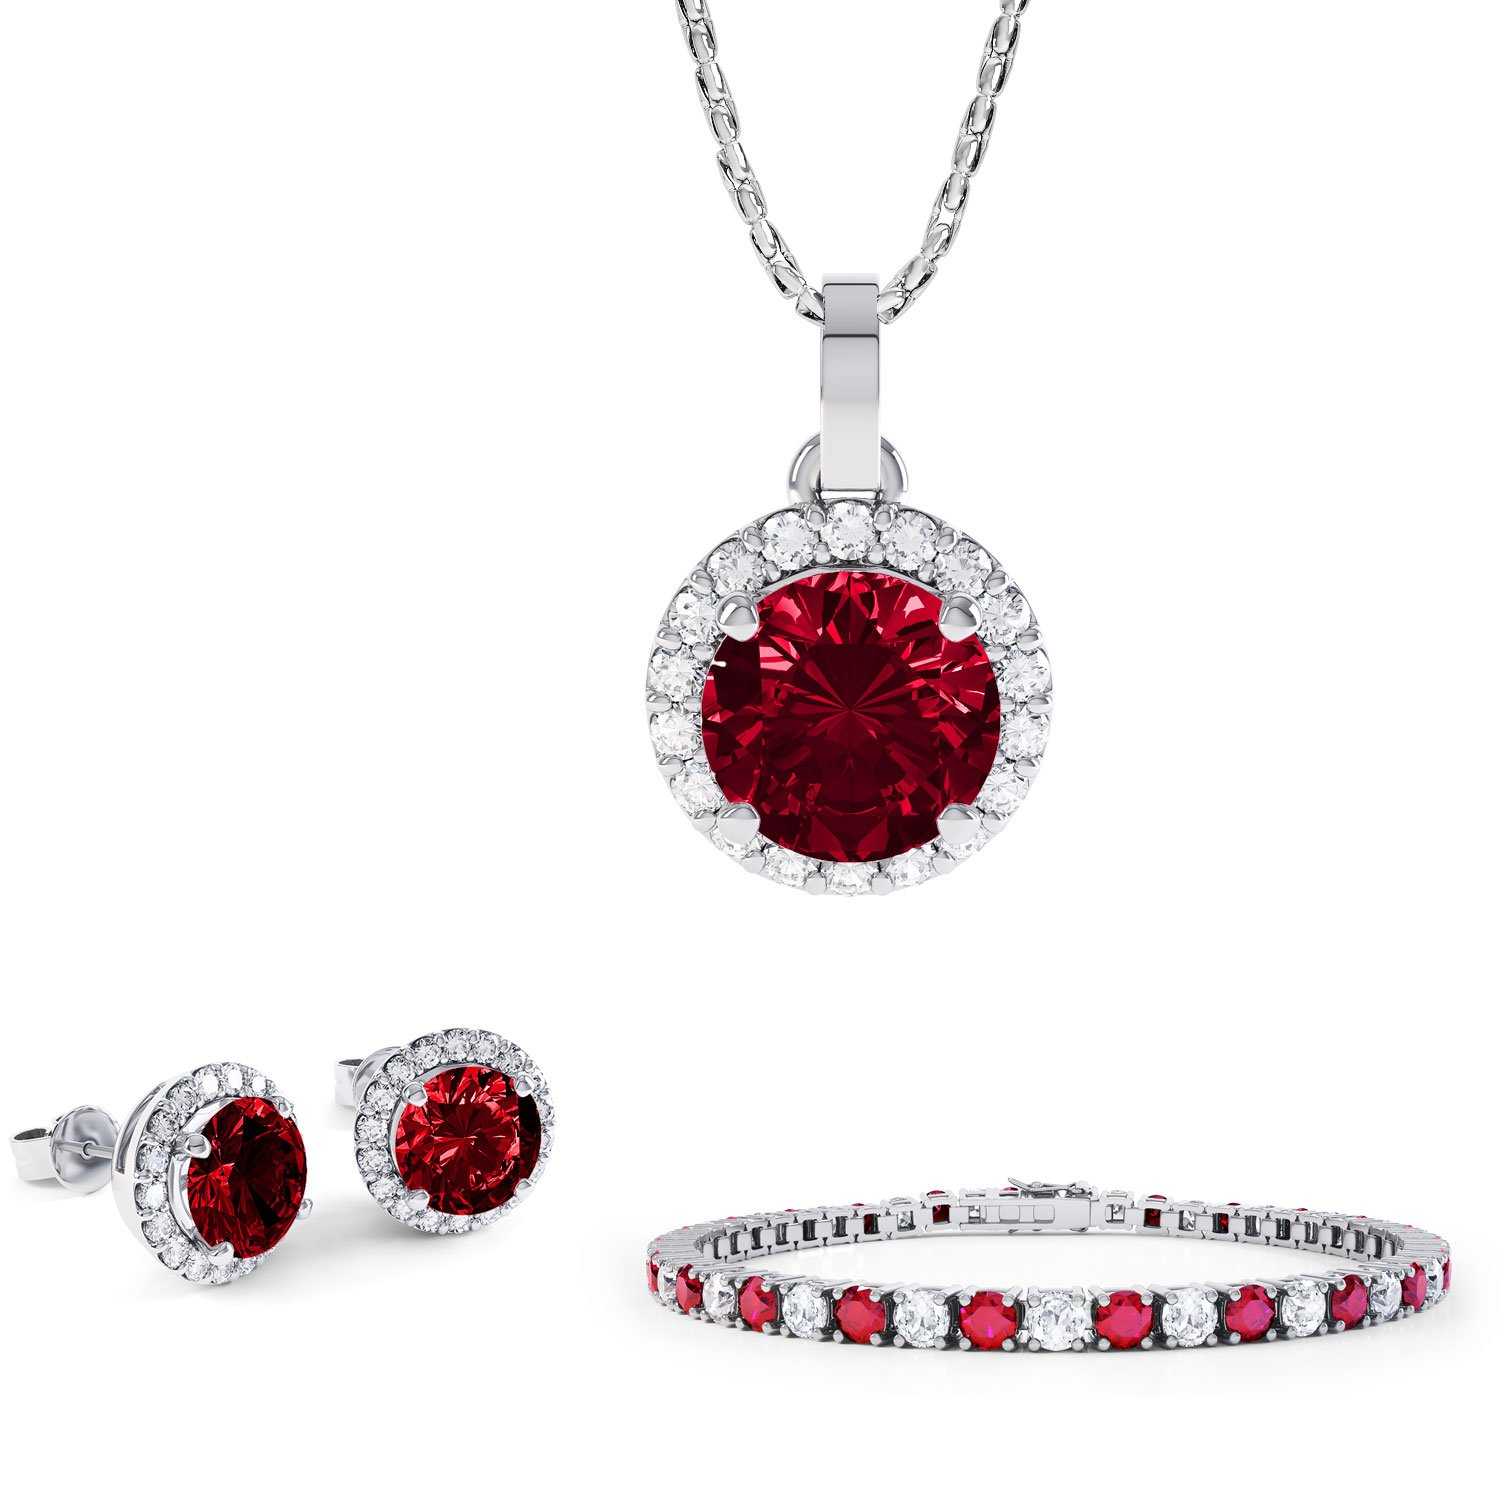 Eternity Ruby Platinum plated Silver Jewelry Set with Pendant